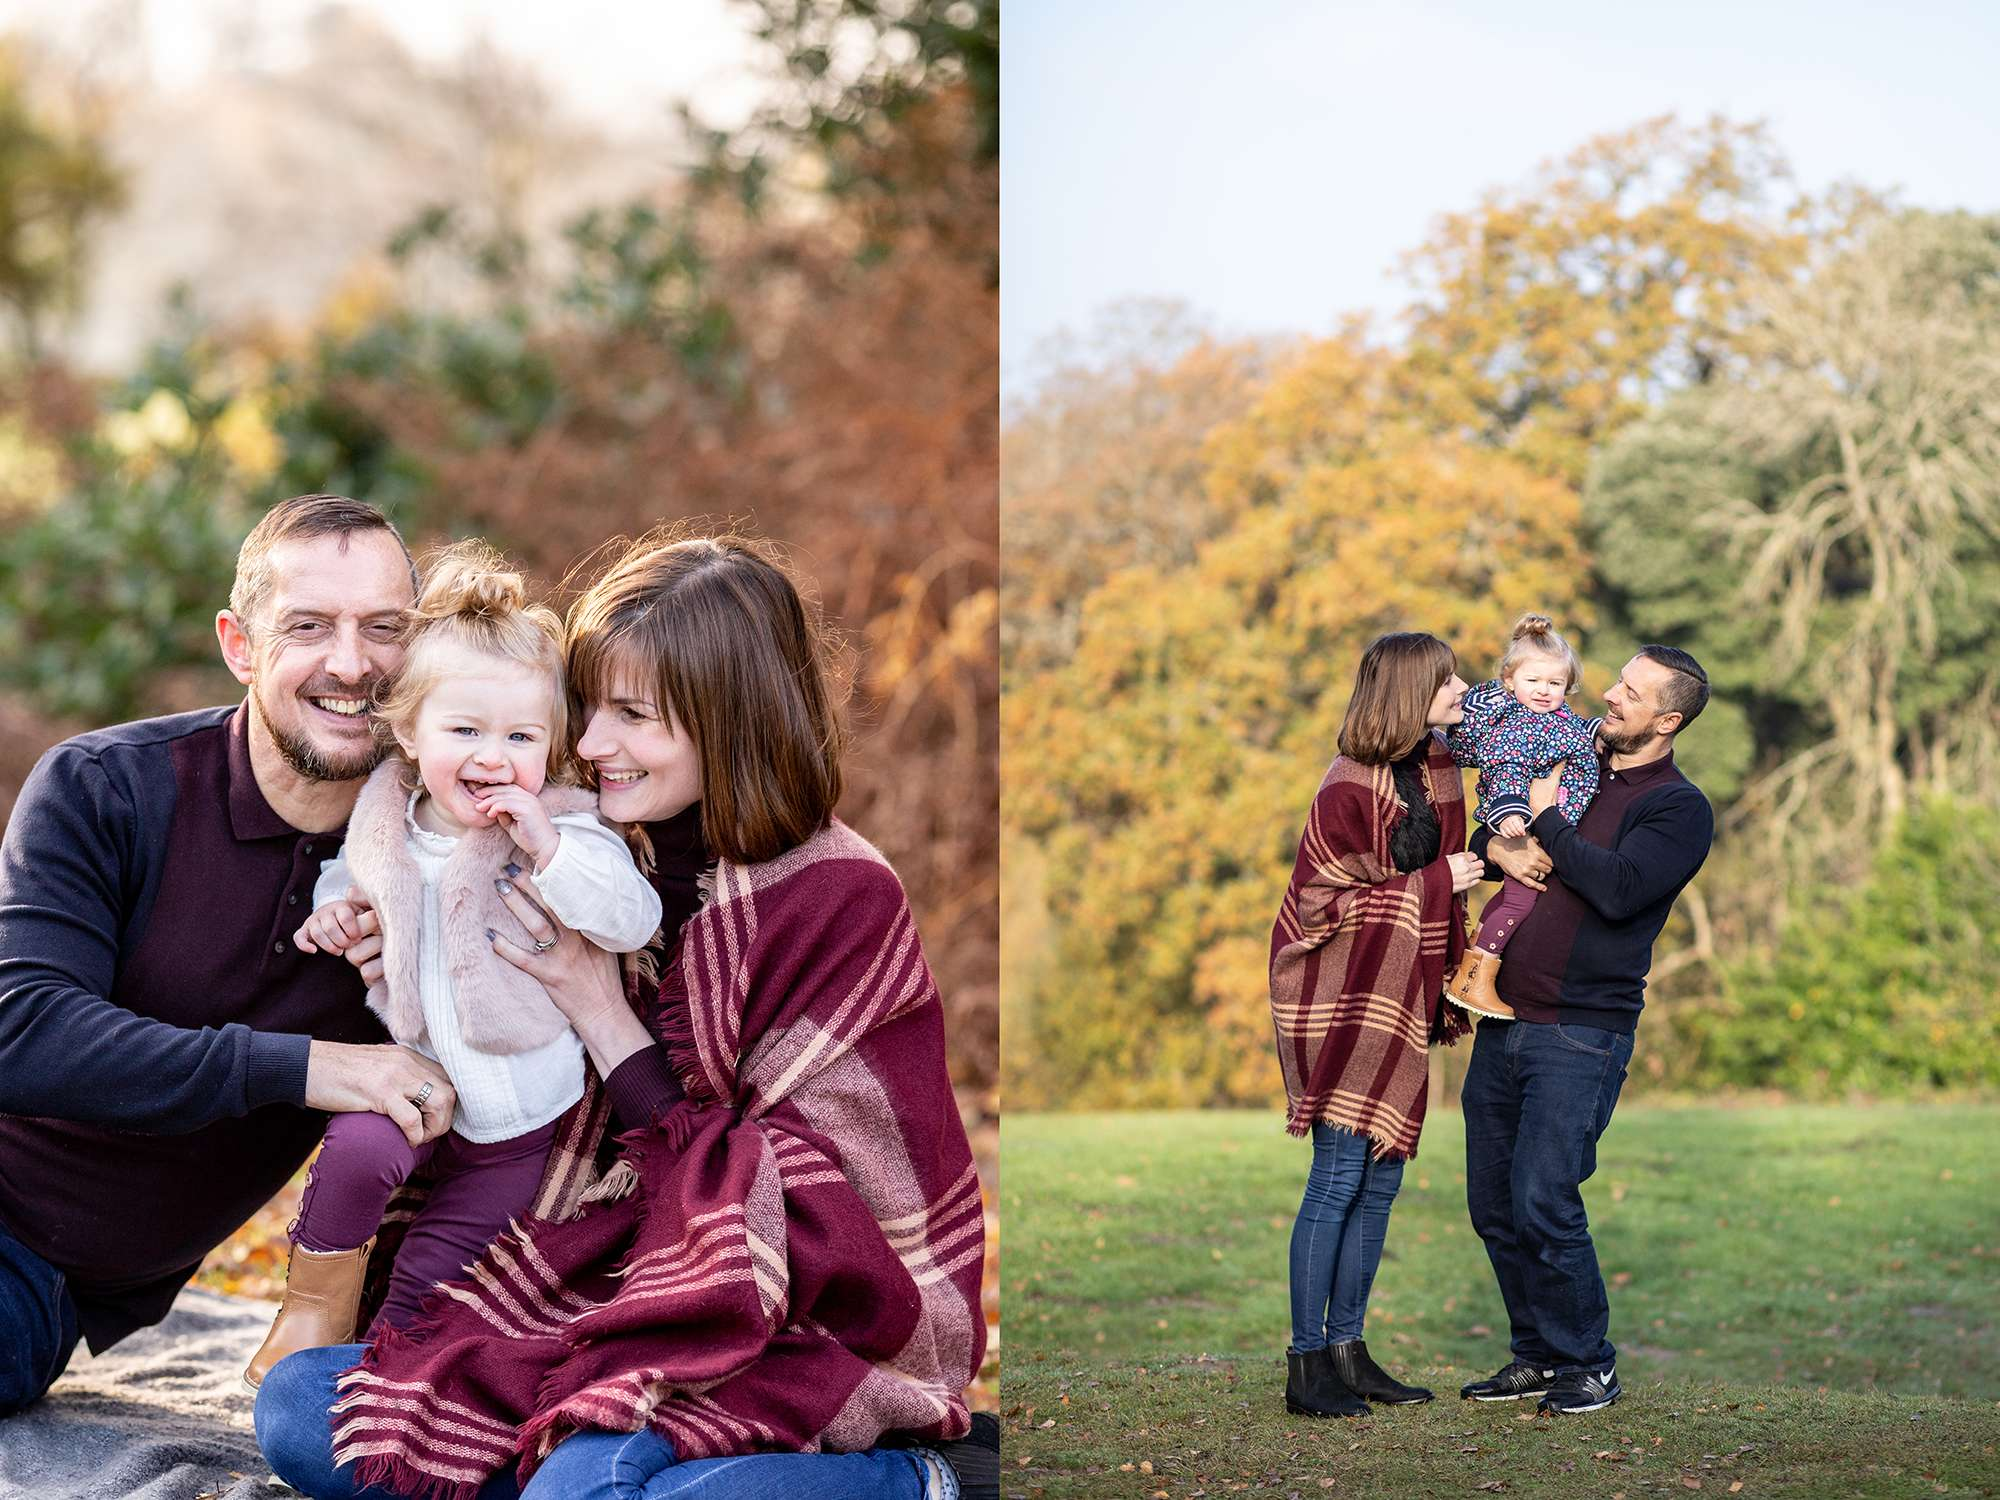 A lifestyle portrait photo of a family with a toddler in a park